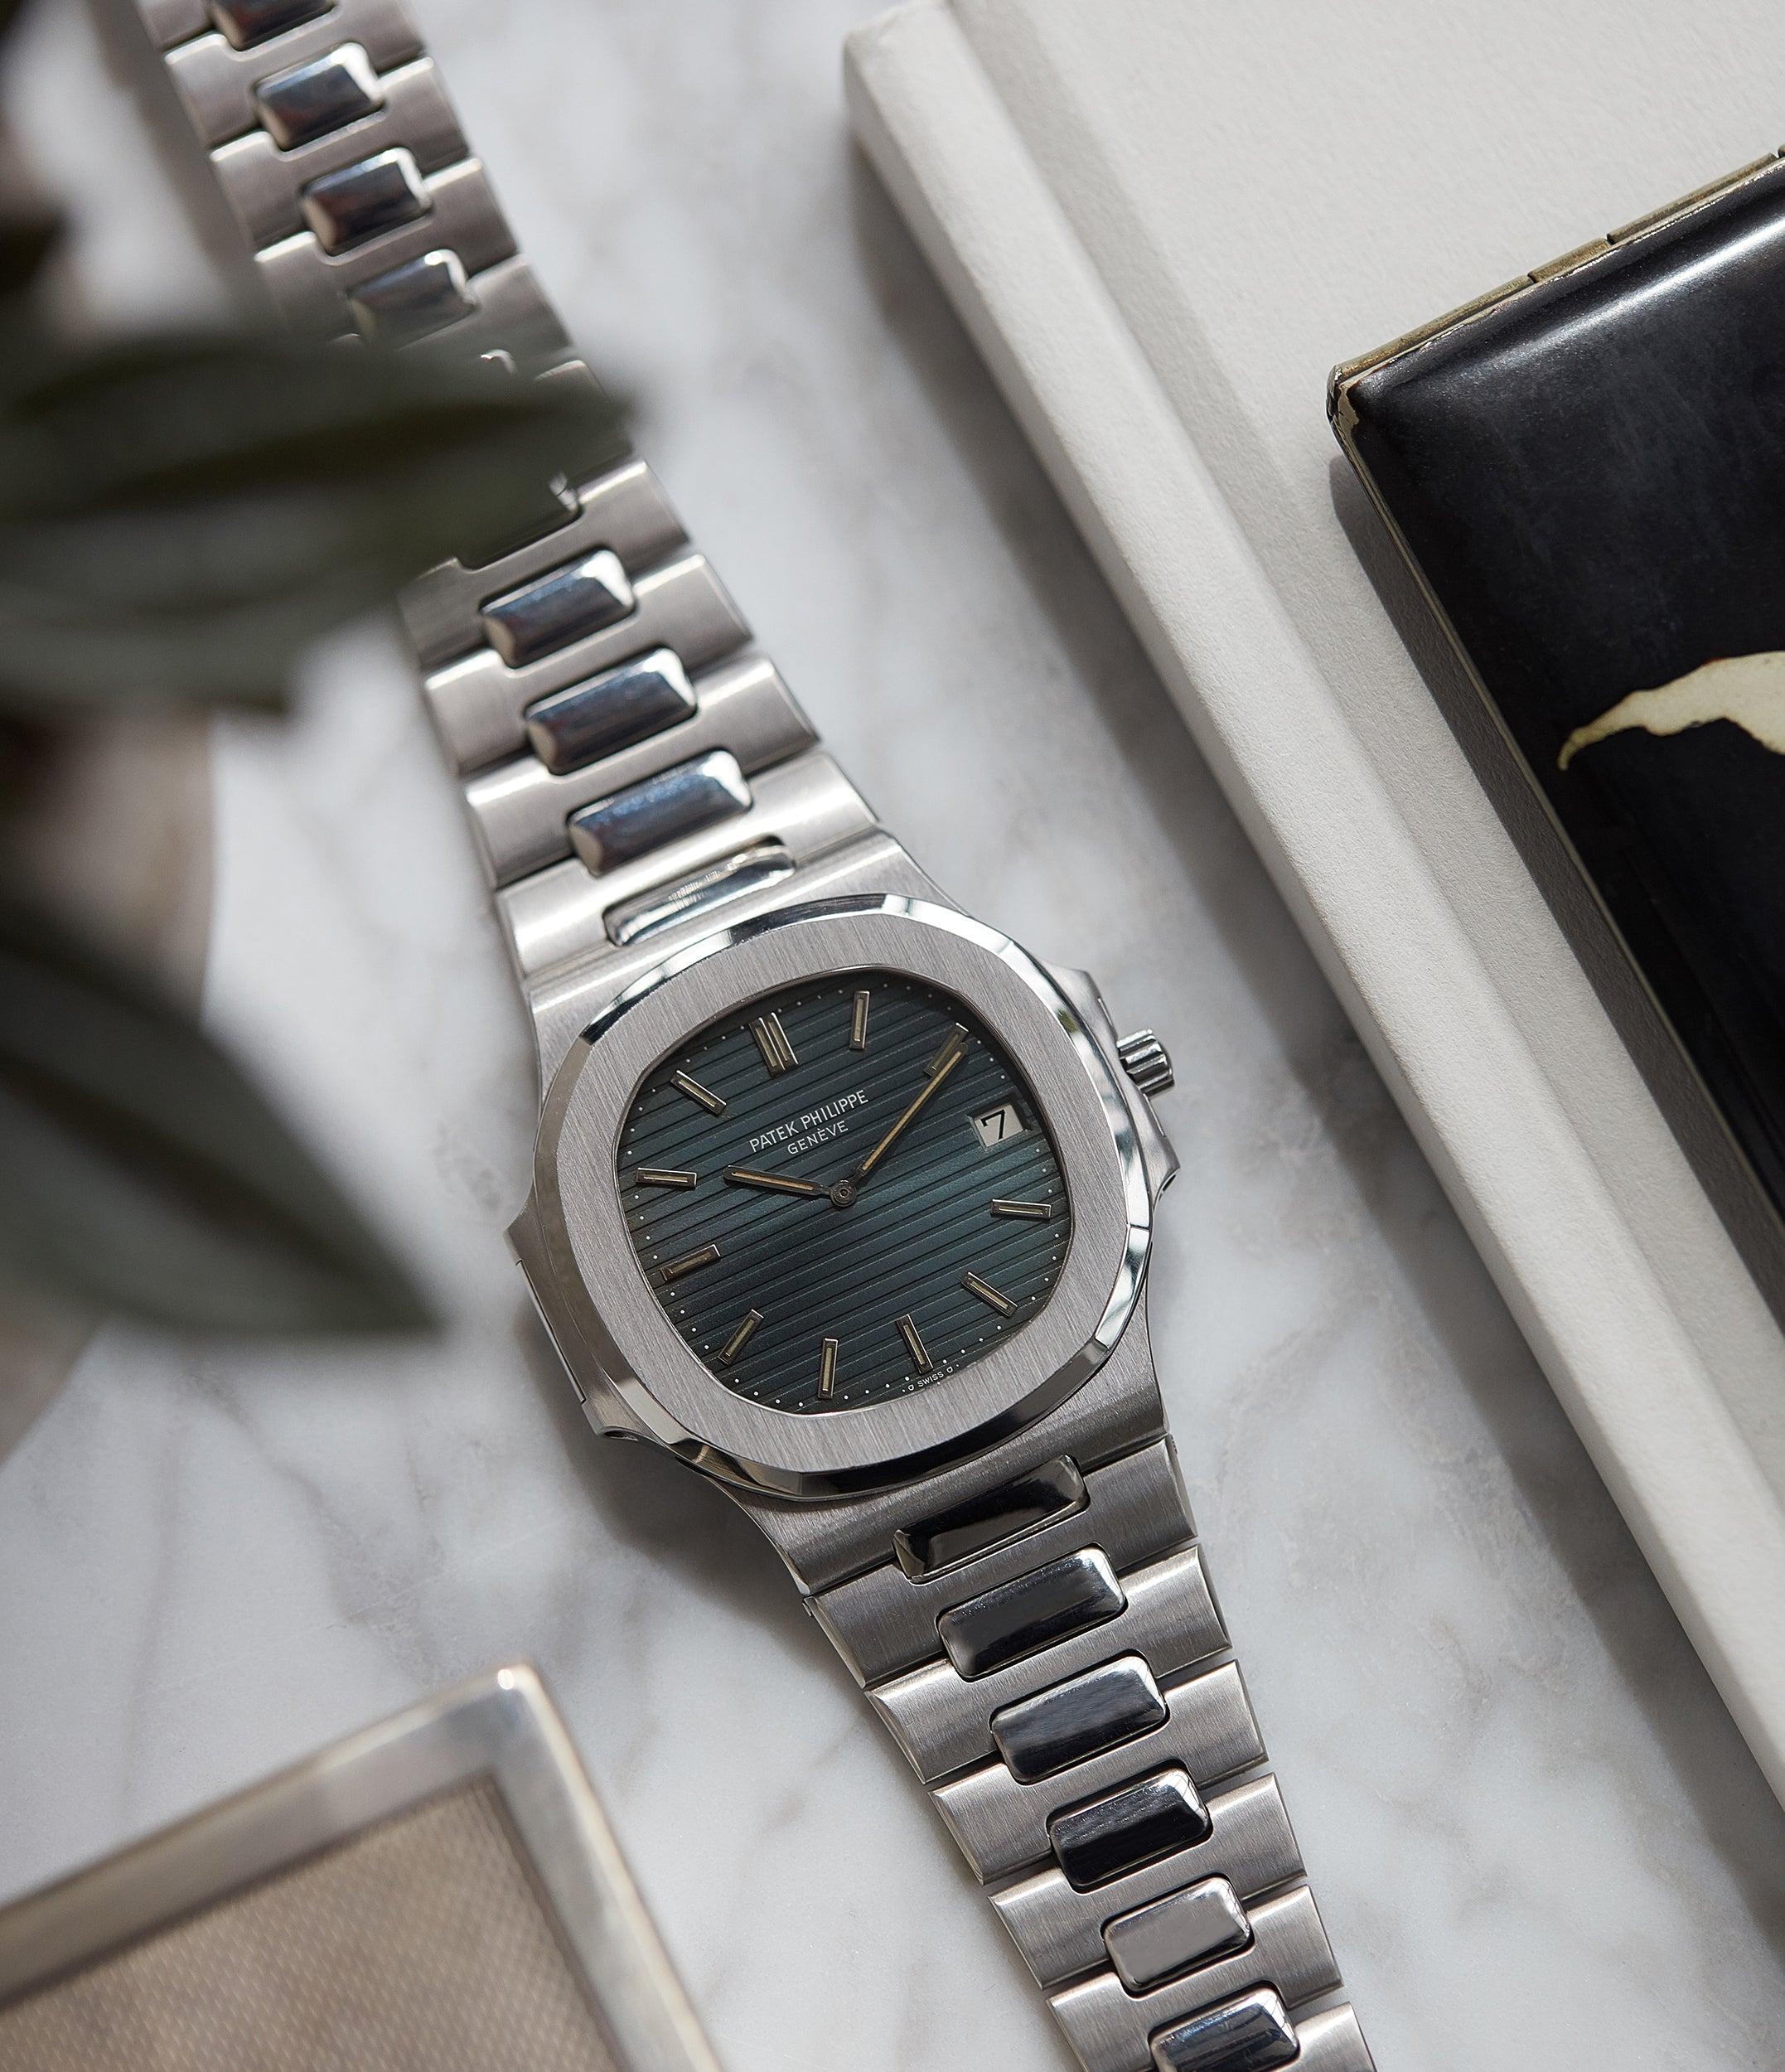 87dddf62072 Patek Philippe Nautilus 3700 001 full set vintage watch for sale online at  A Collected